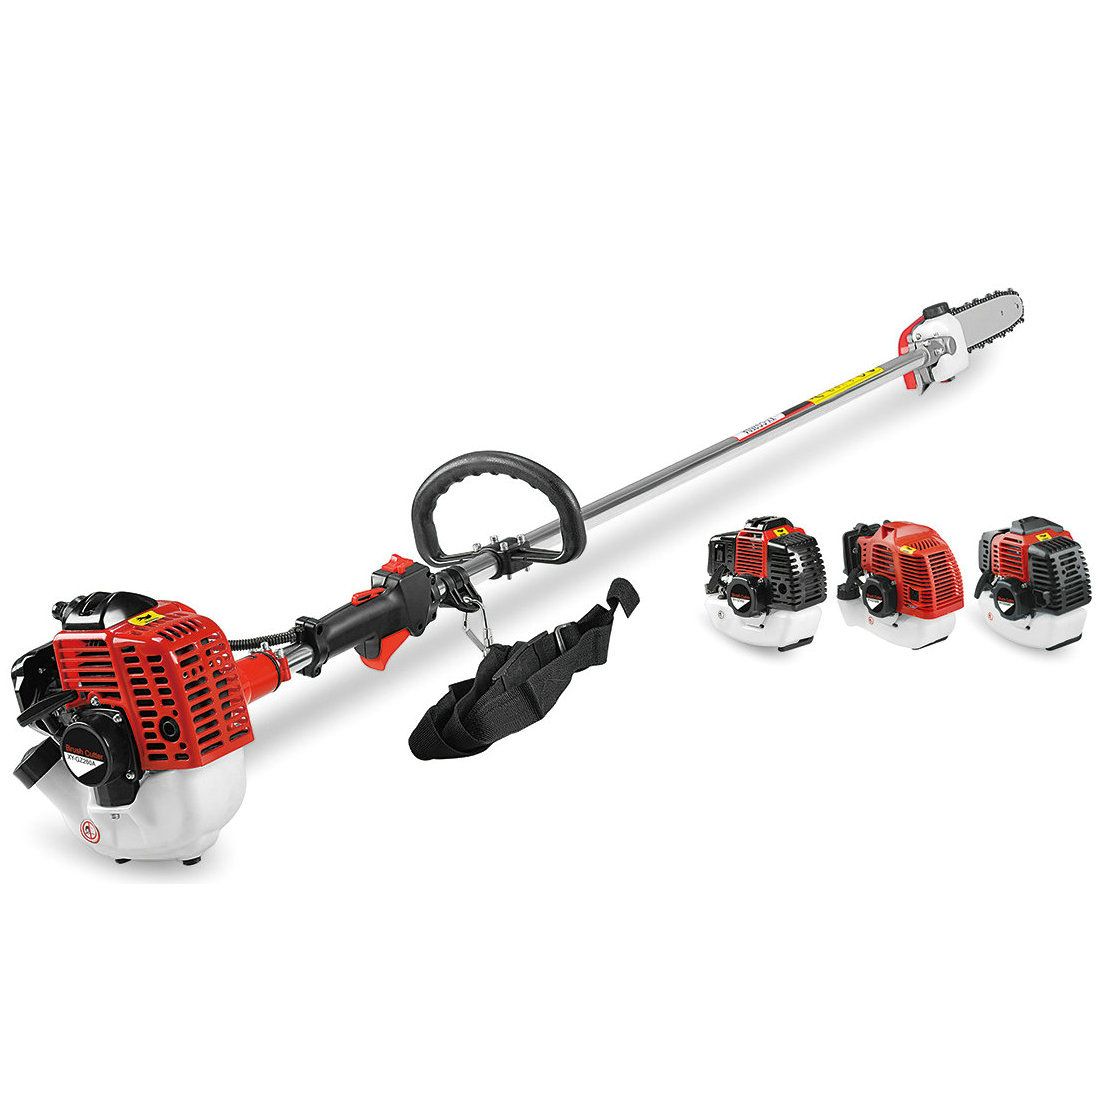 43cc/52cc 2-Stroke Side Attached Gasoline Brush Cutter with 1E44F-5 Engine (BC430S) echo brushcutters australia